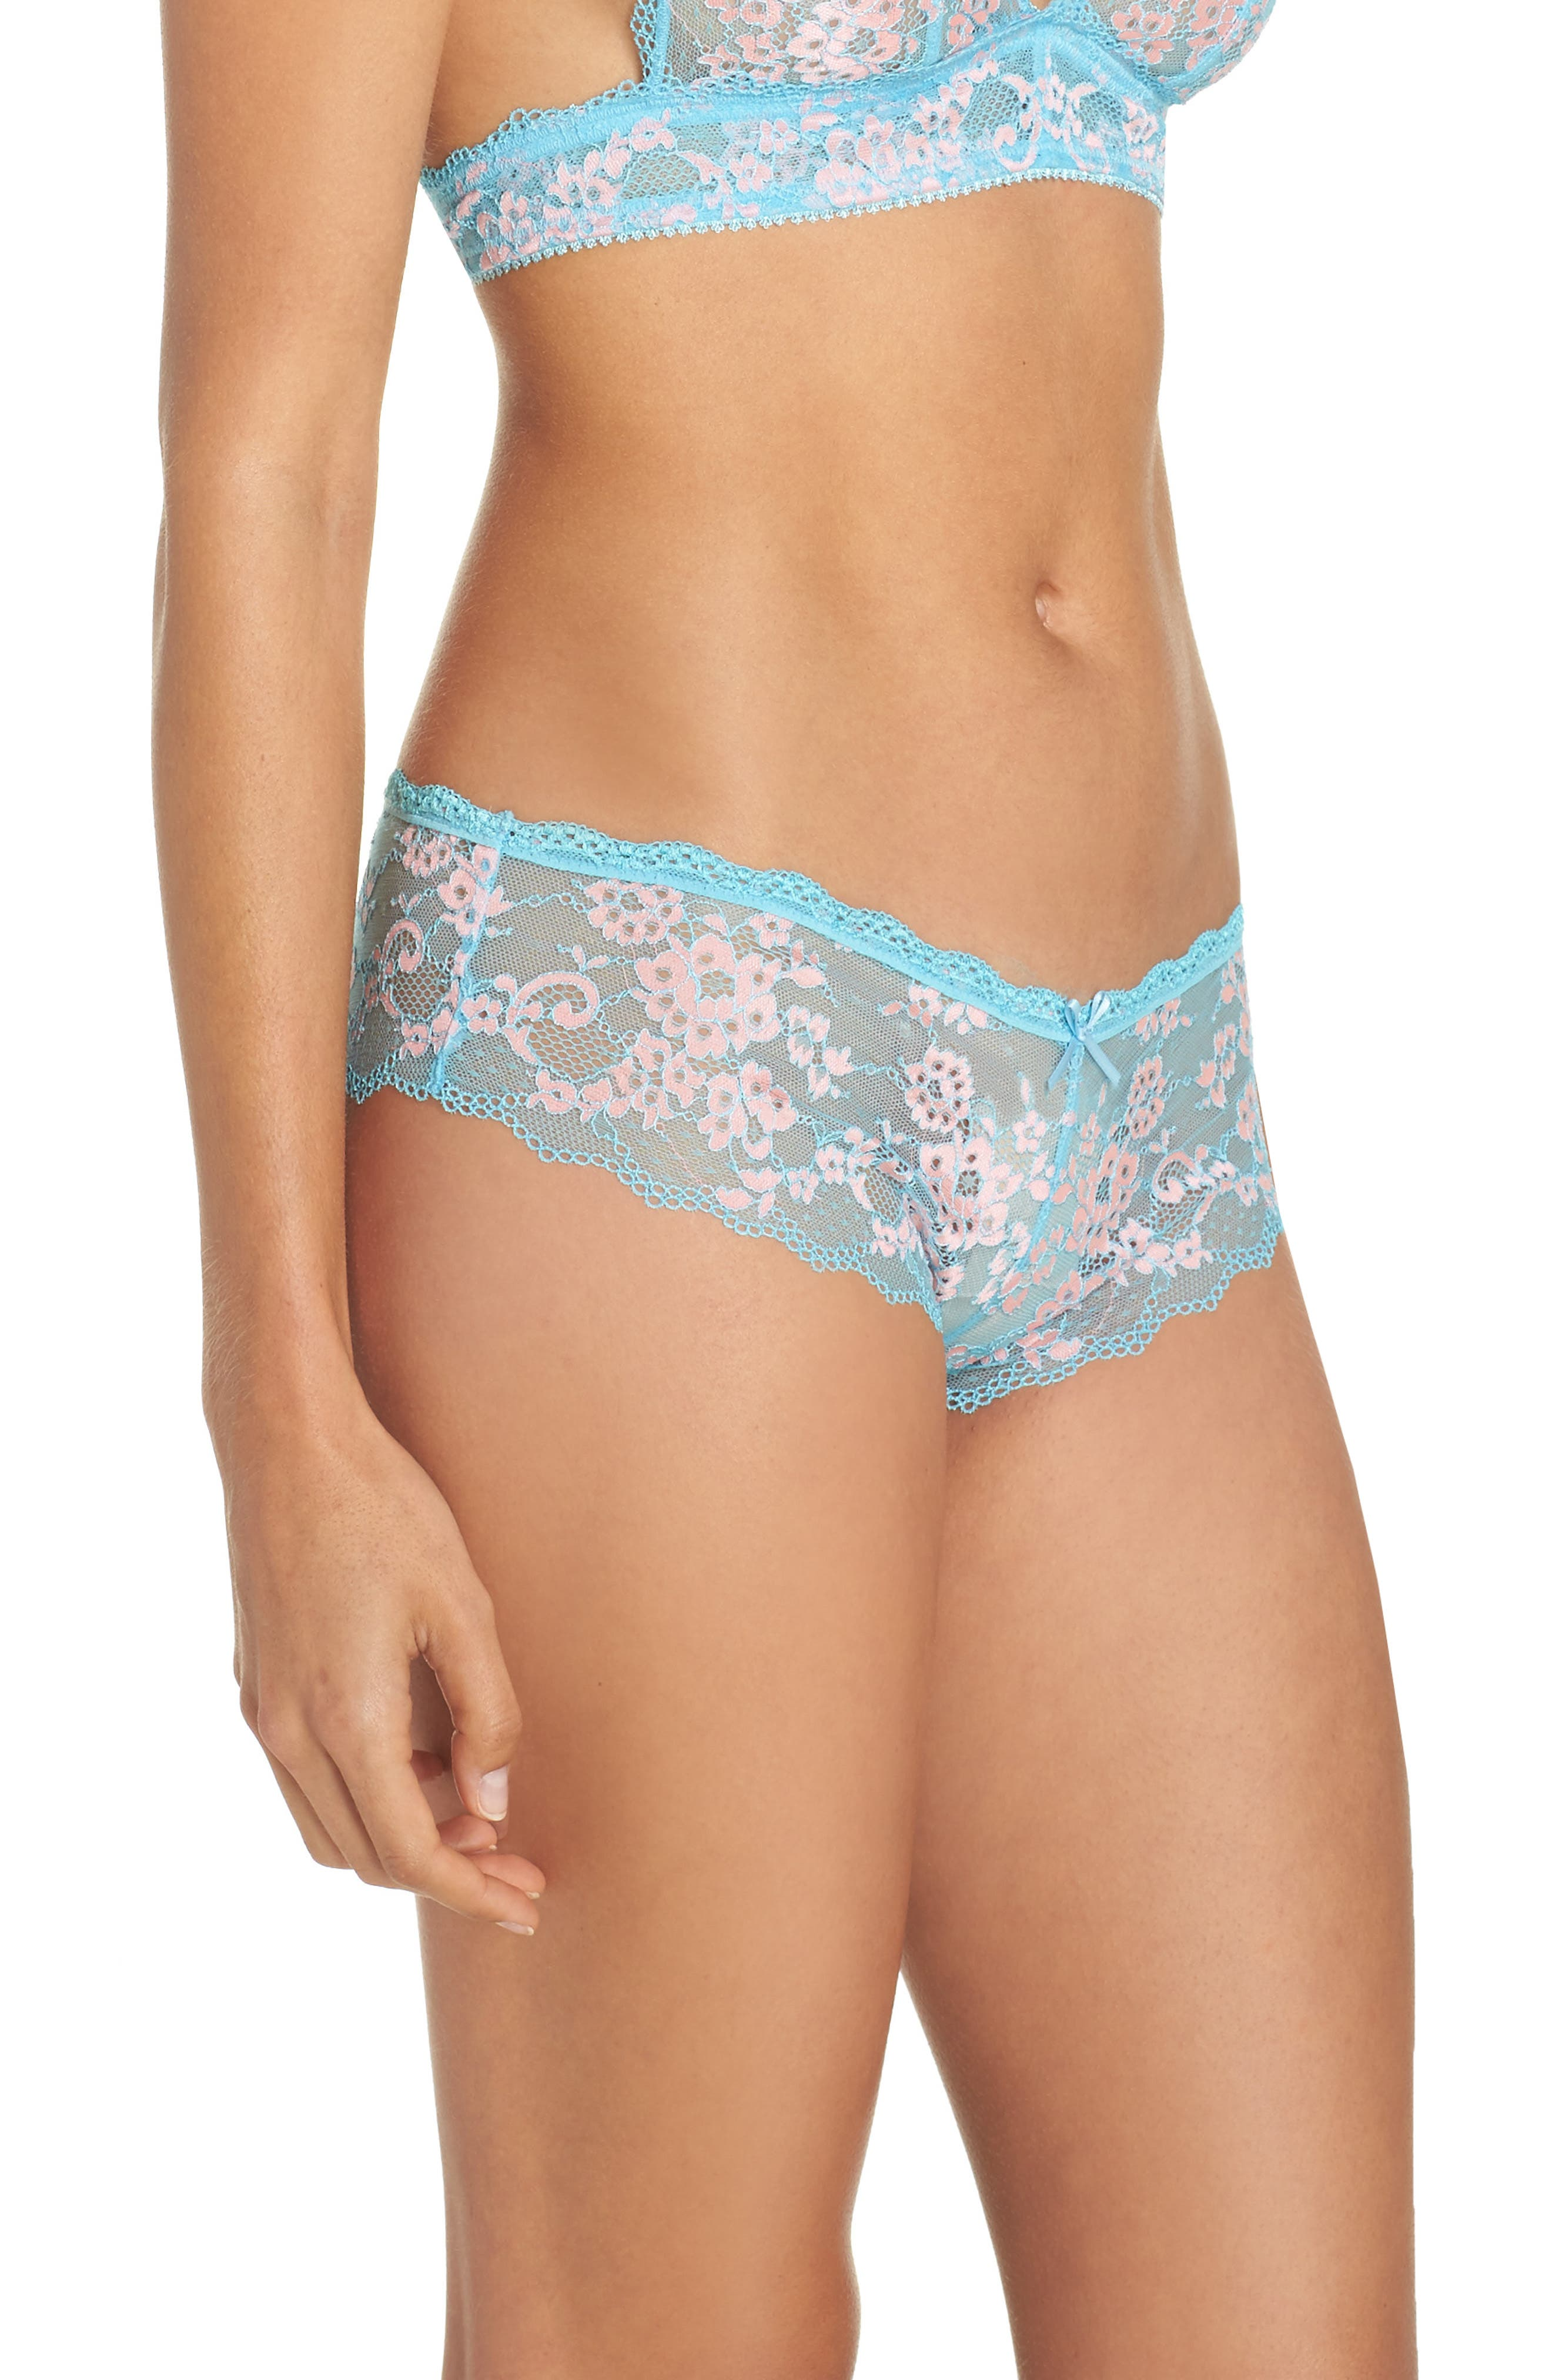 Alternate Image 3  - Honeydew Intimates Camellia Hipster Briefs (3 for $33)